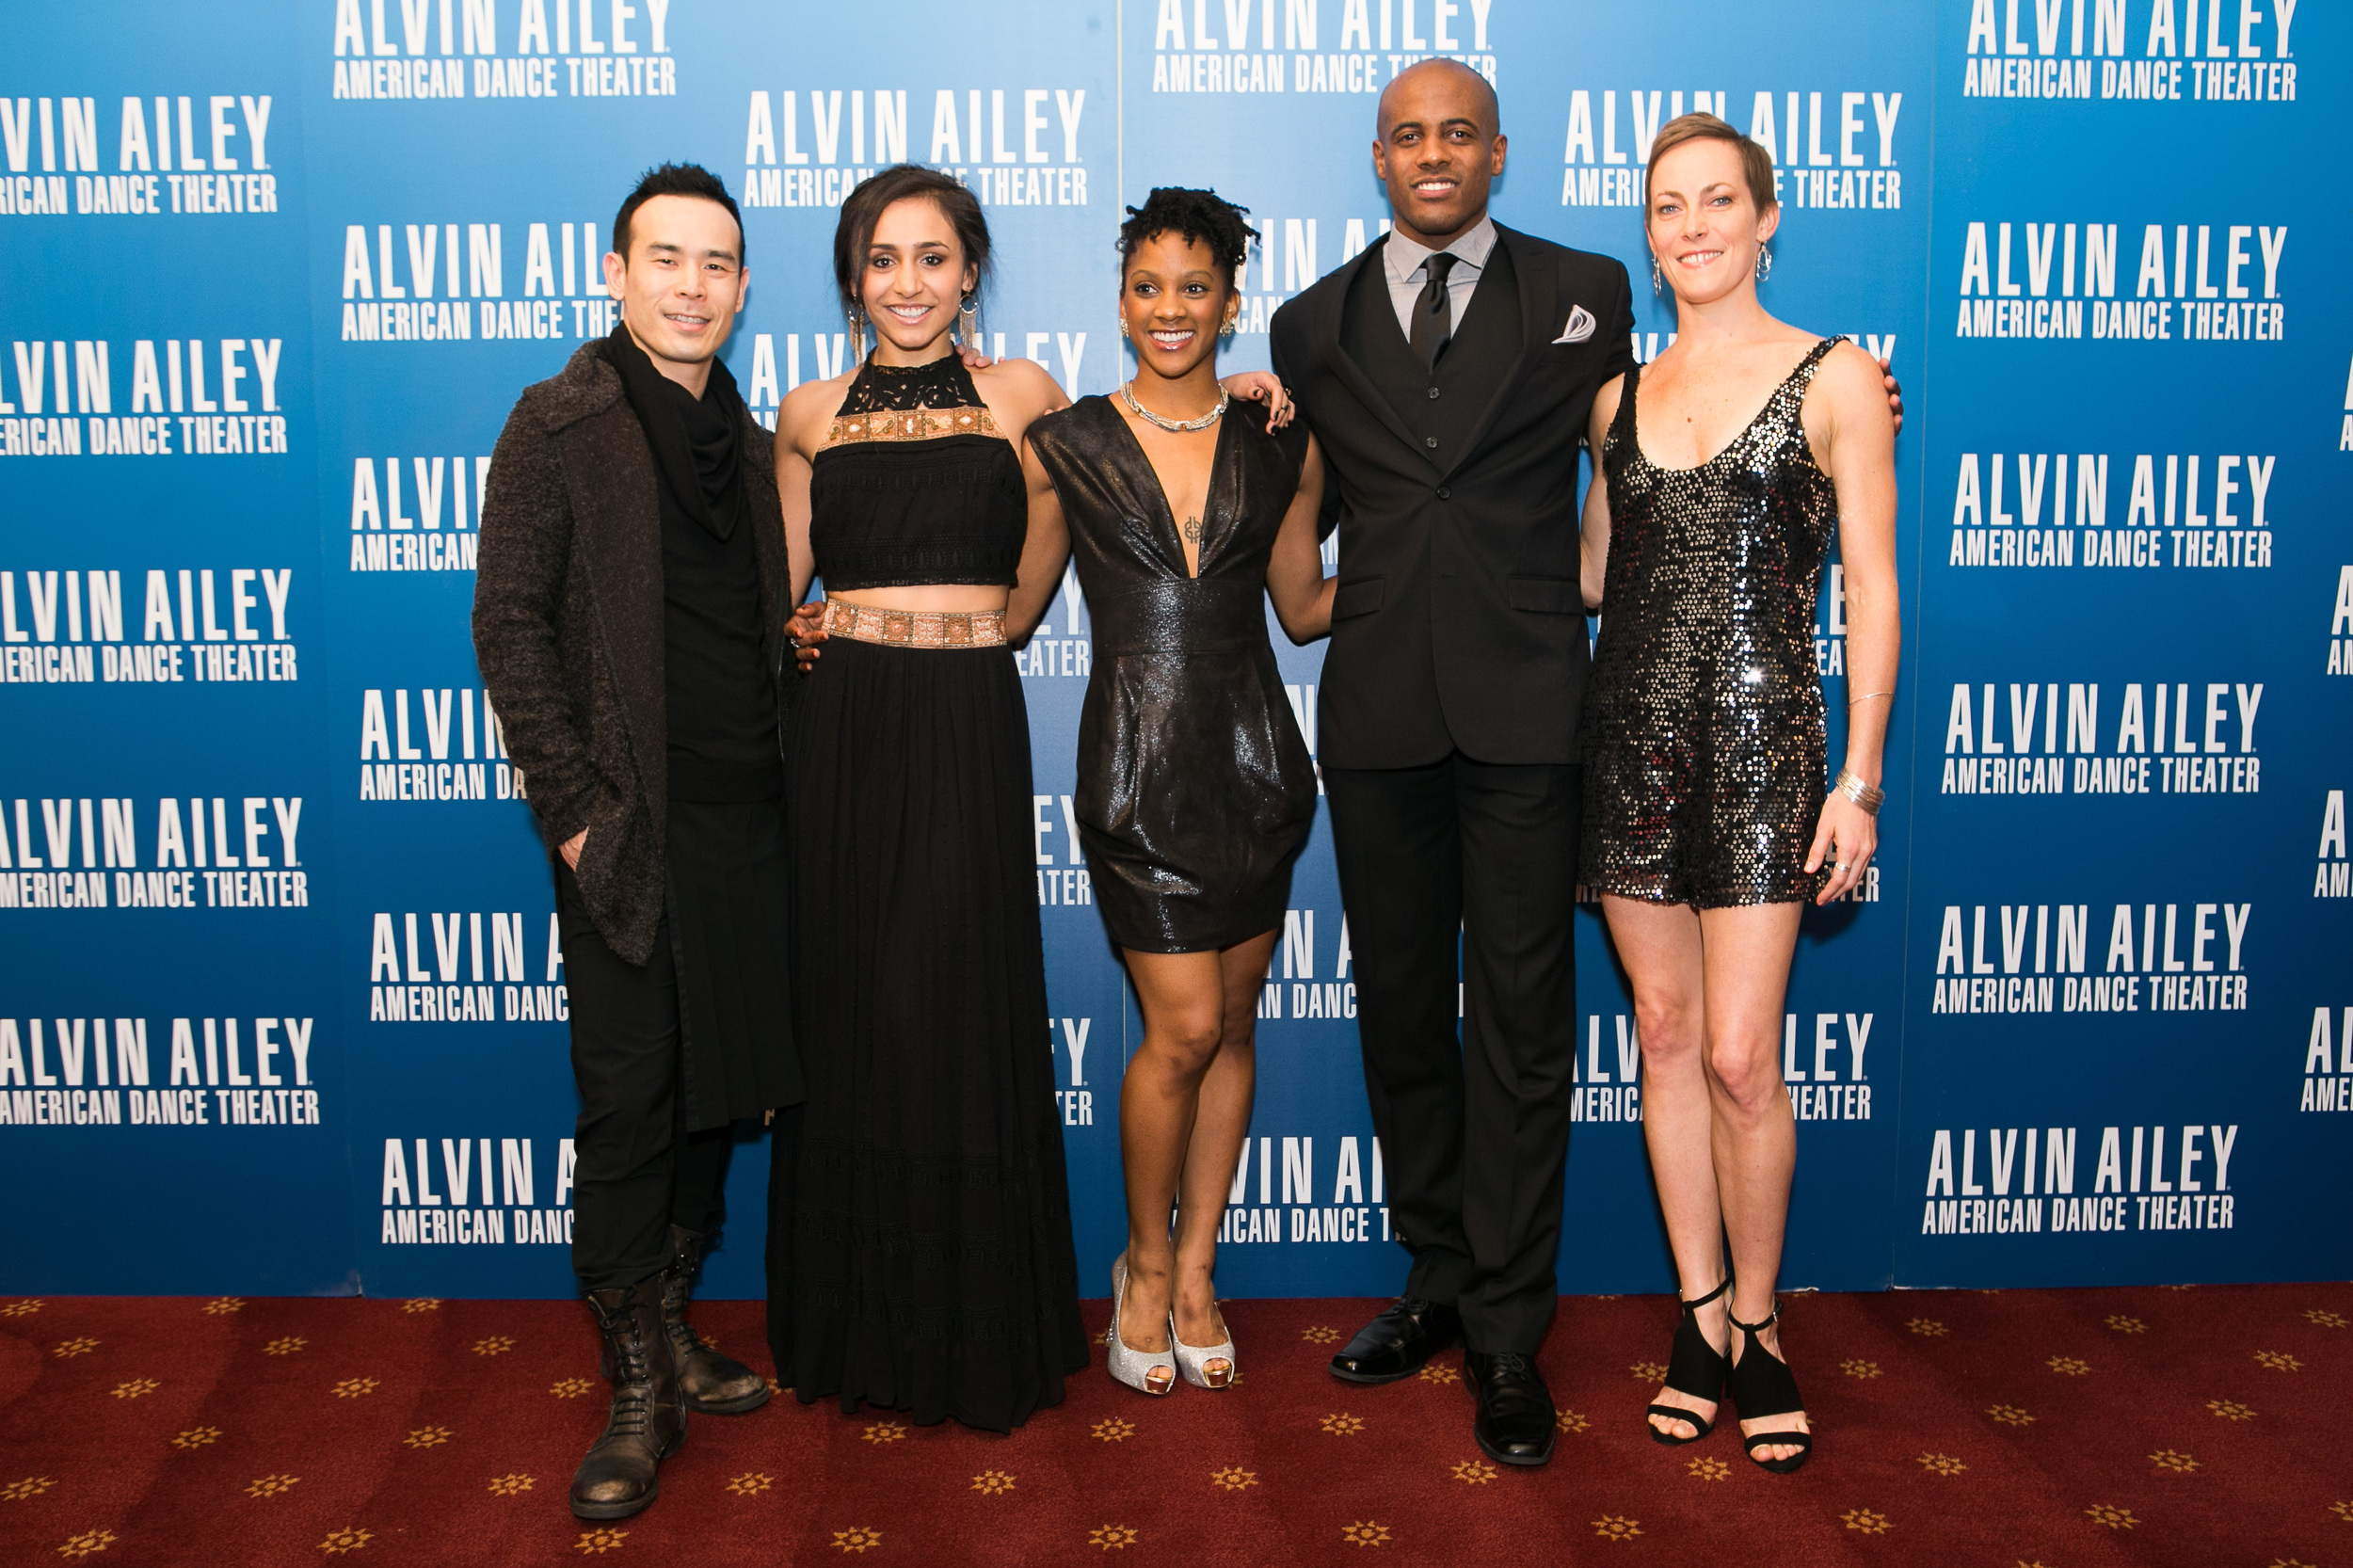 Alvin Ailey American Dance Theater Dancers attend Alvin Ailey's 2014 Opening Night Gala. Photo by Dario Calmese Jr